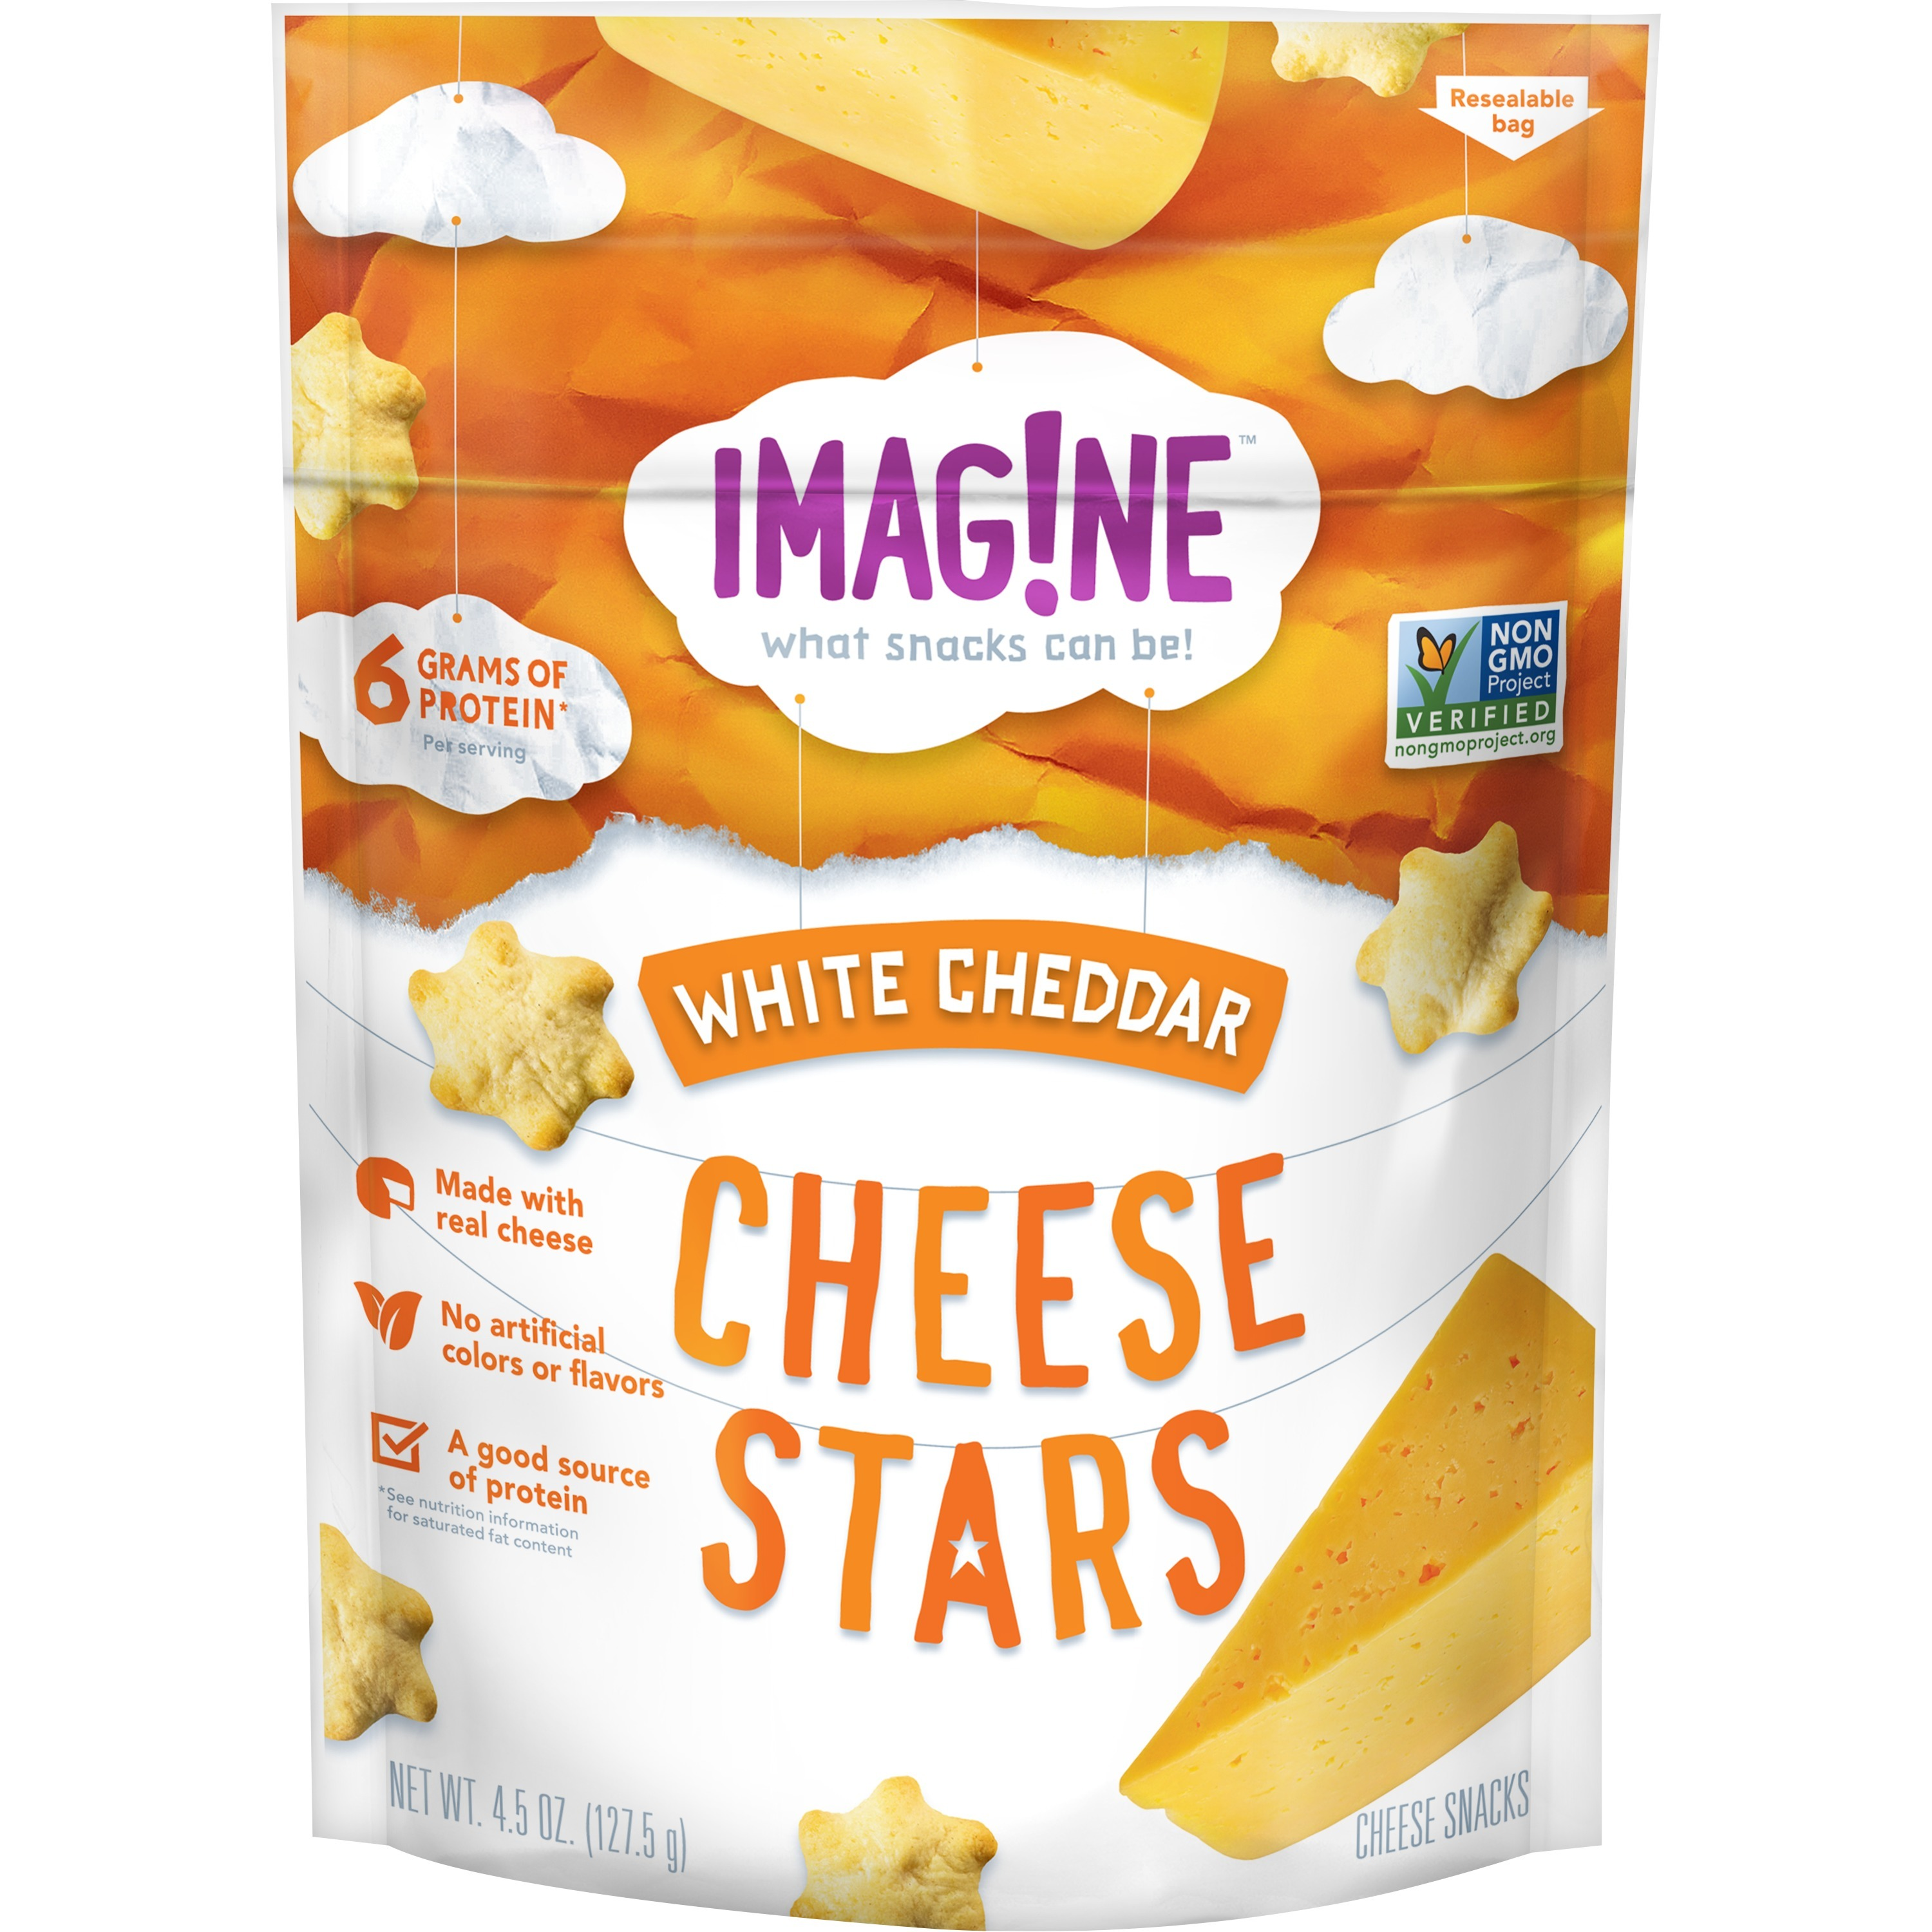 Imag!ne White Cheddar Cheese Stars, 4.5 oz Bag